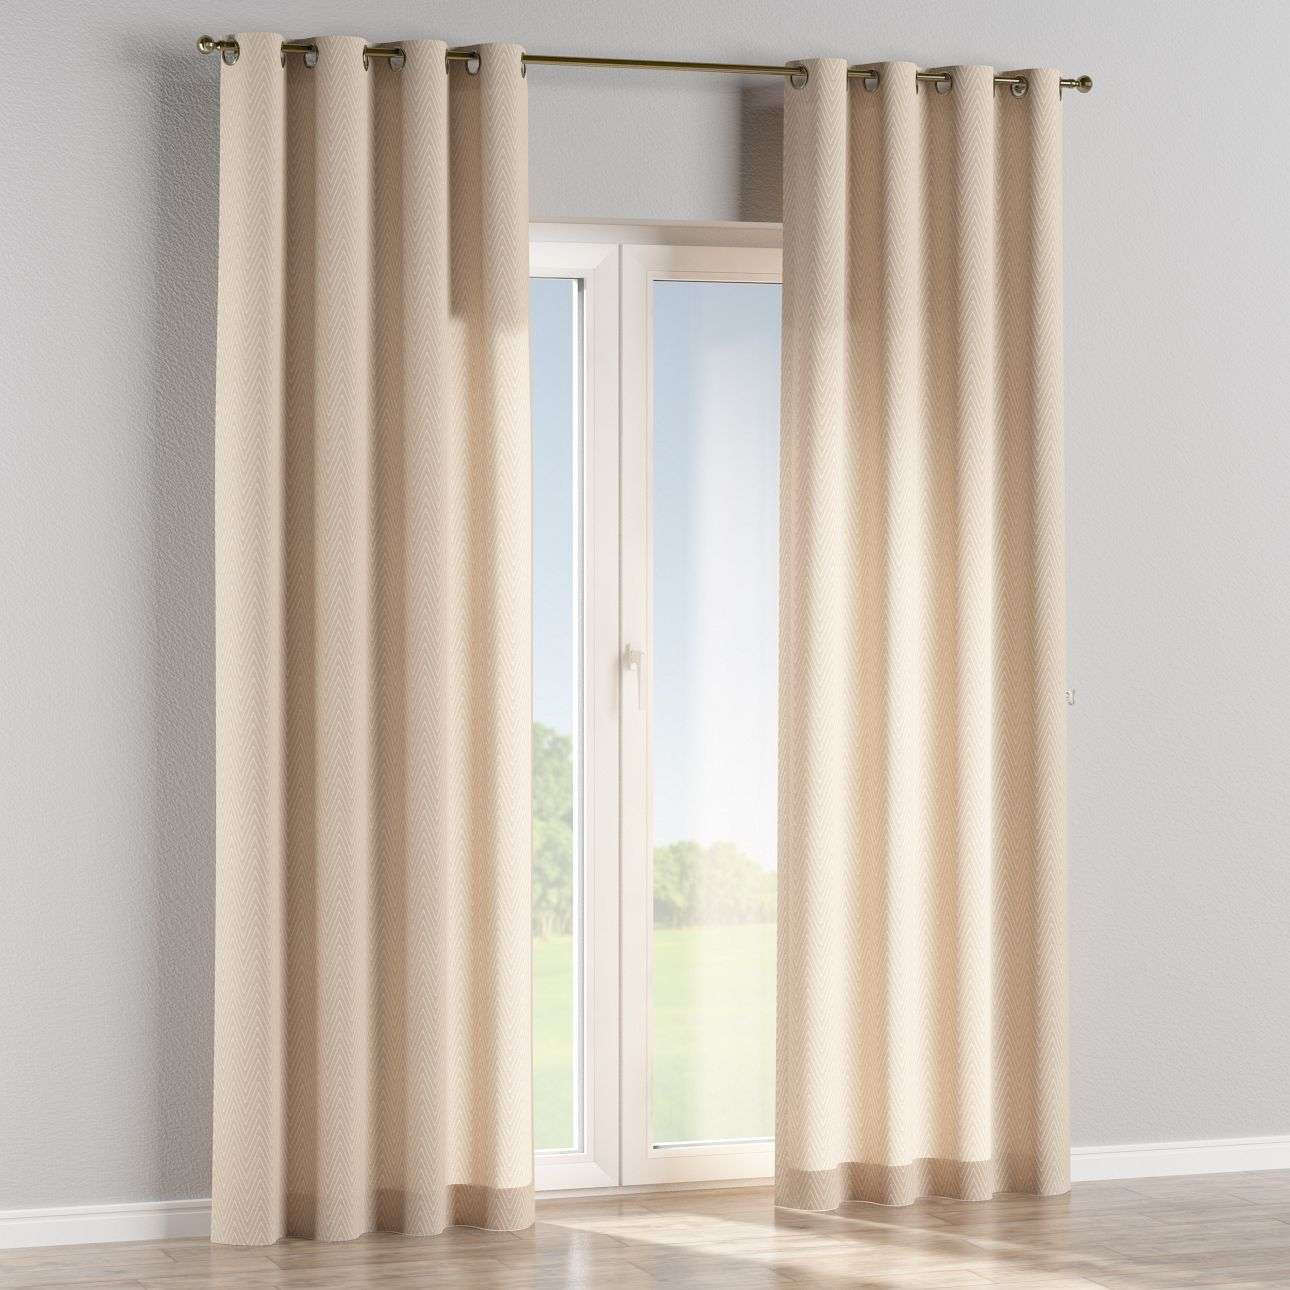 Eyelet curtains in collection Brooklyn, fabric: 137-91